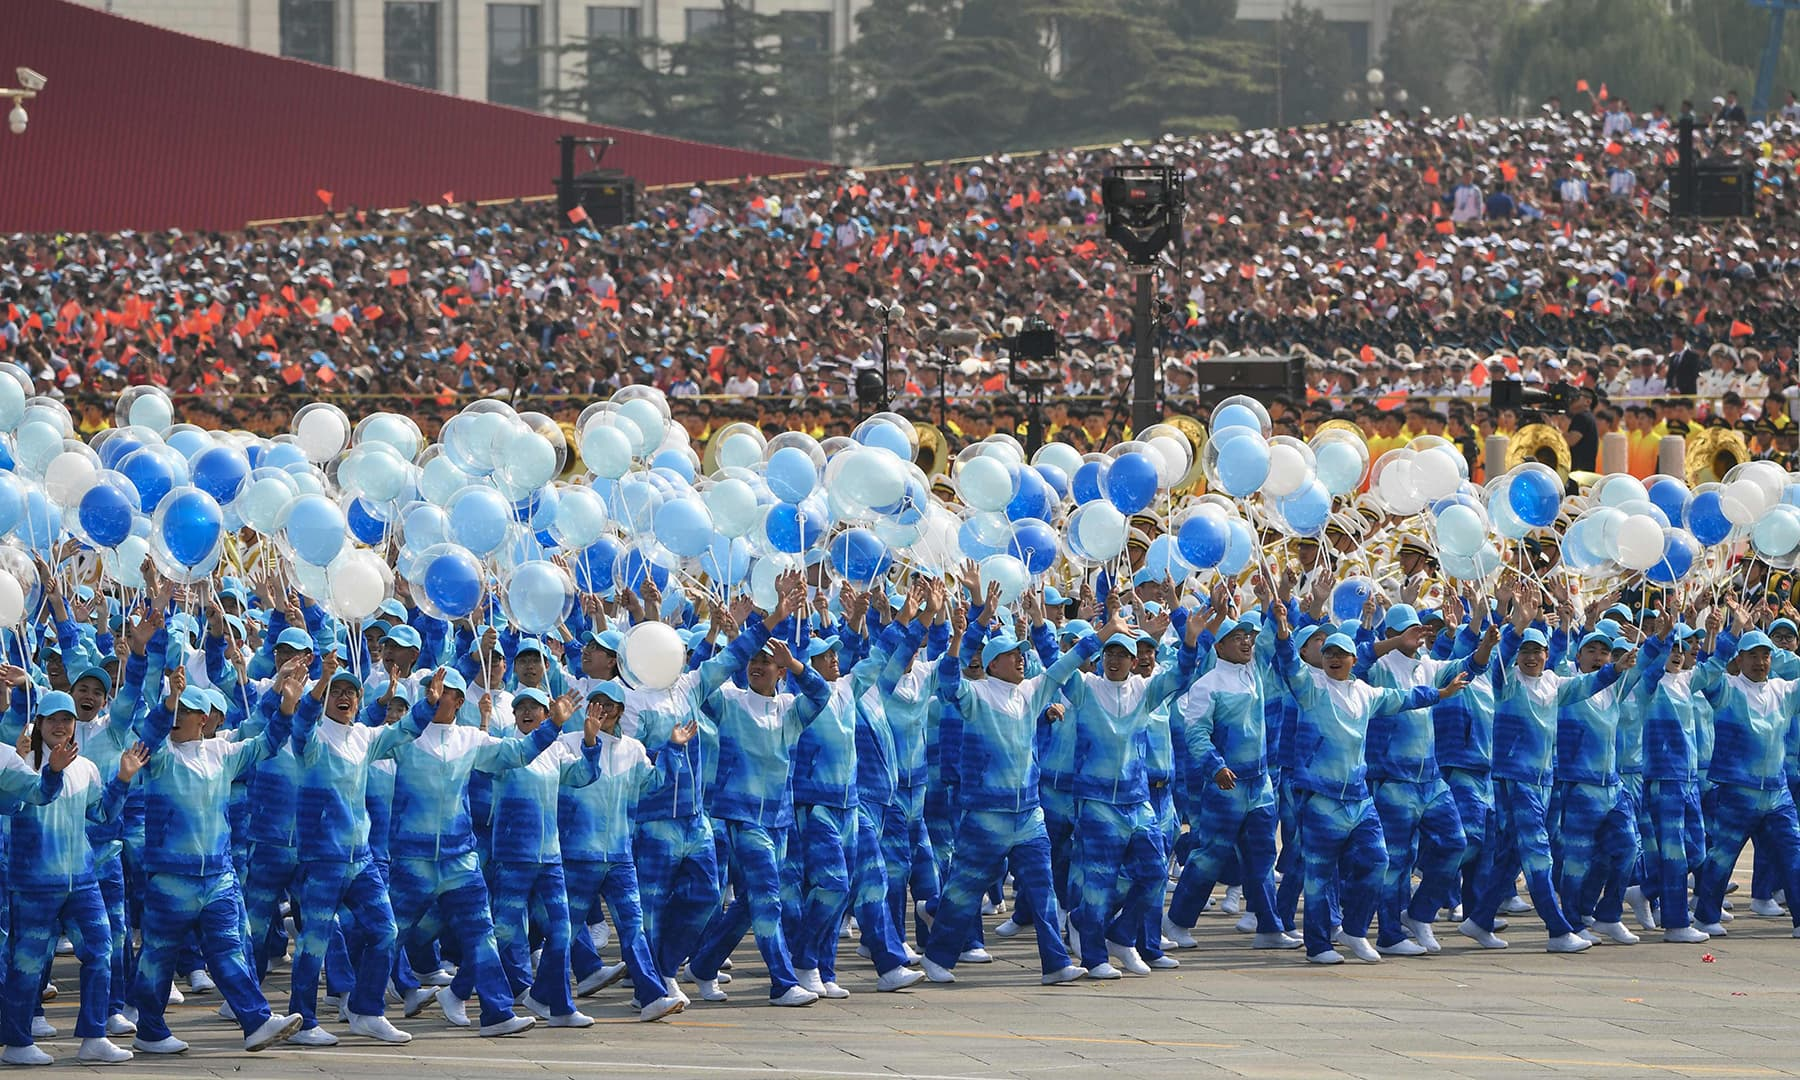 People take part in the National Day parade in Tiananmen Square in Beijing. — AFP